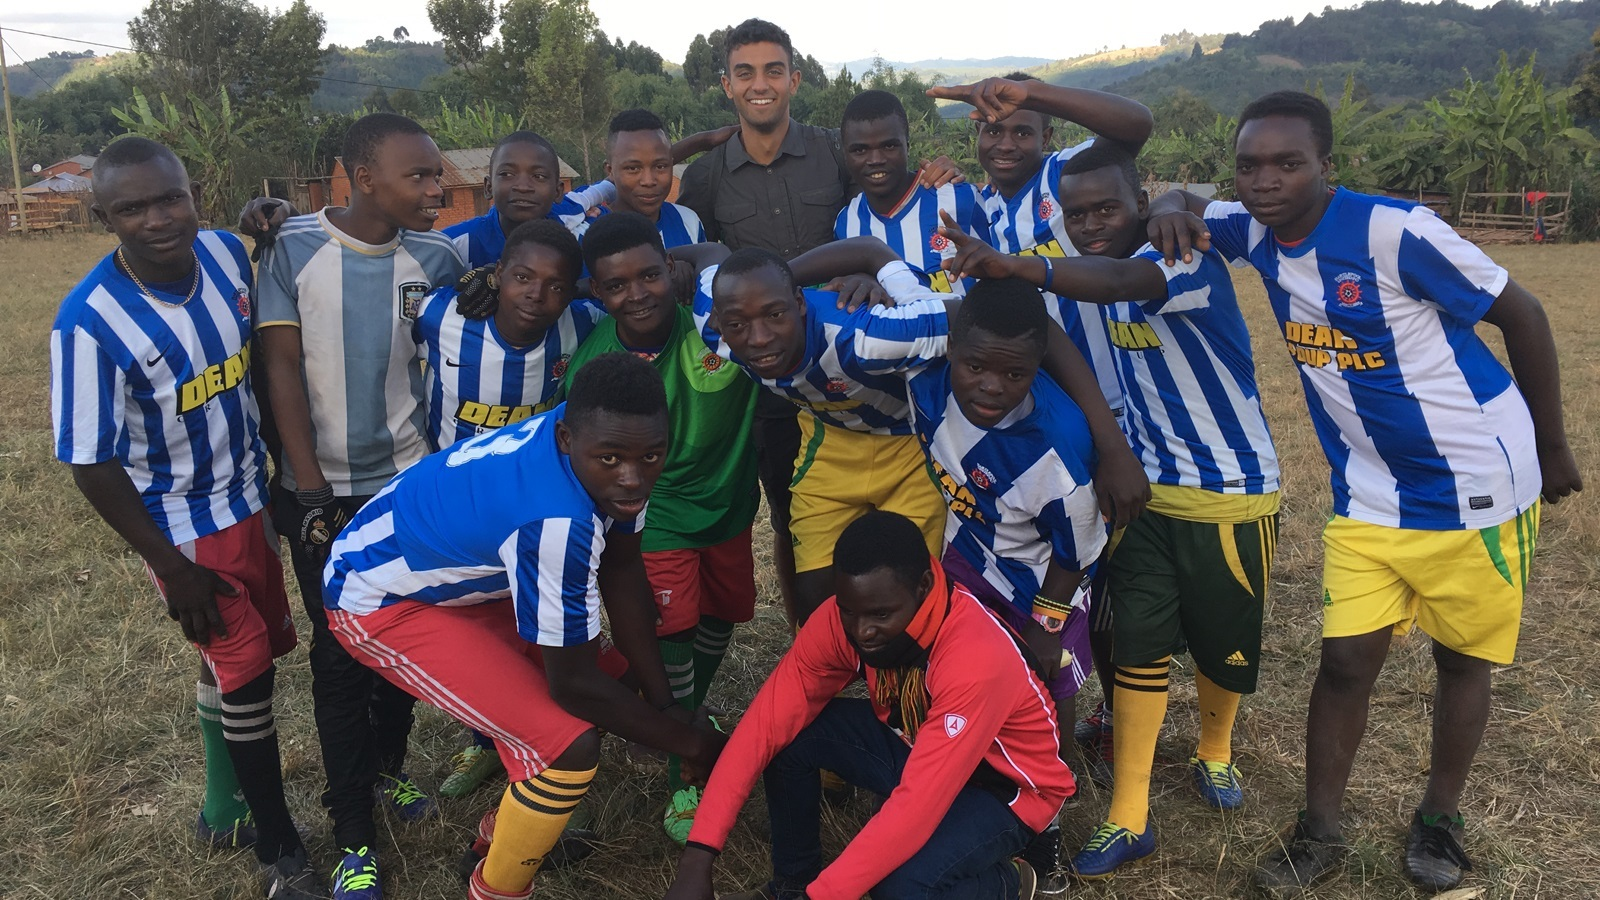 Student Tom Buller helps dozens of deprived Tanzanian youngsters with a shipment of Hartlepool United kits donated by the club